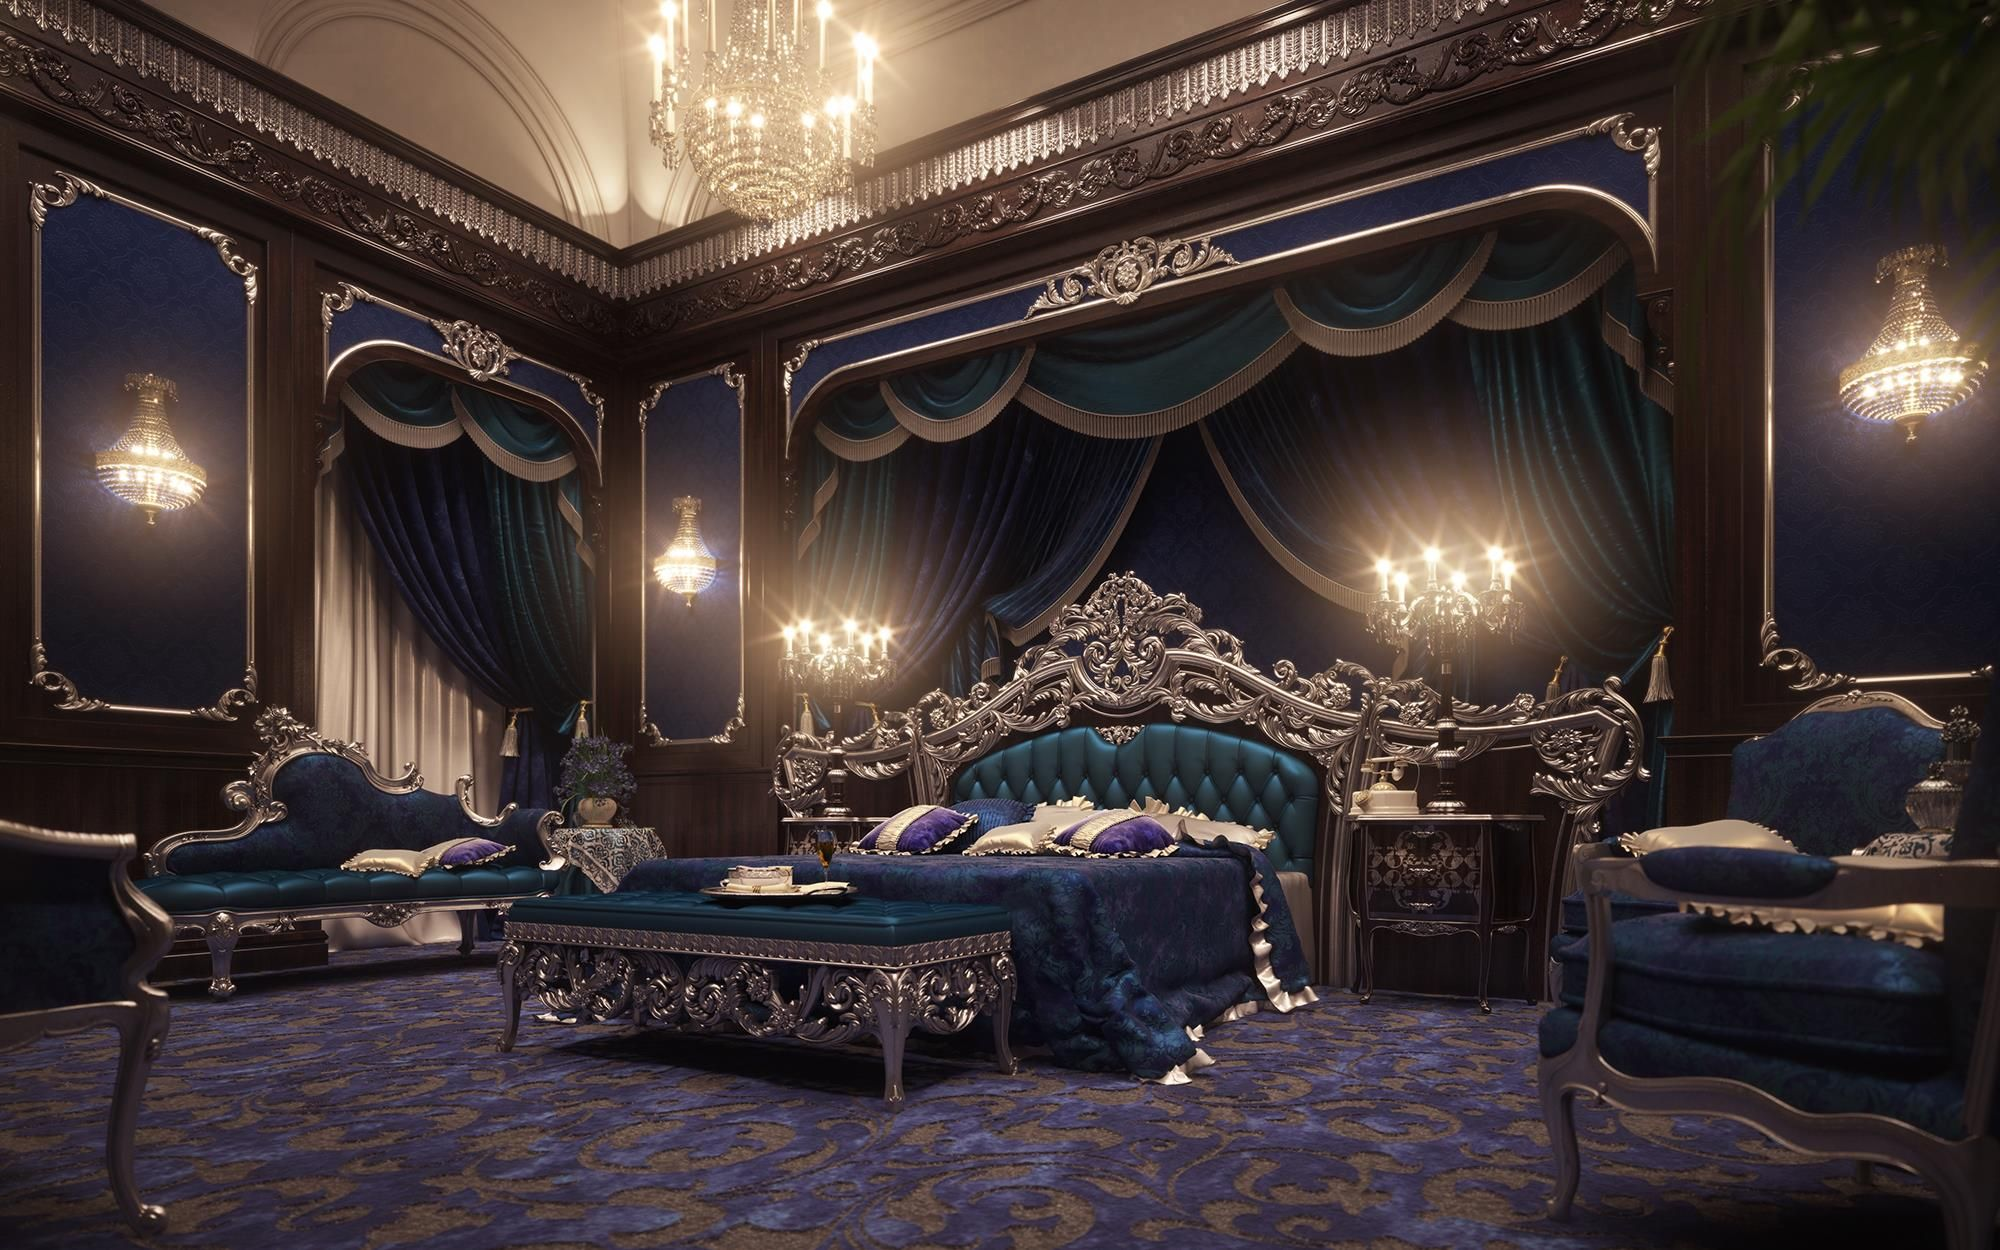 Royal bedroom photo